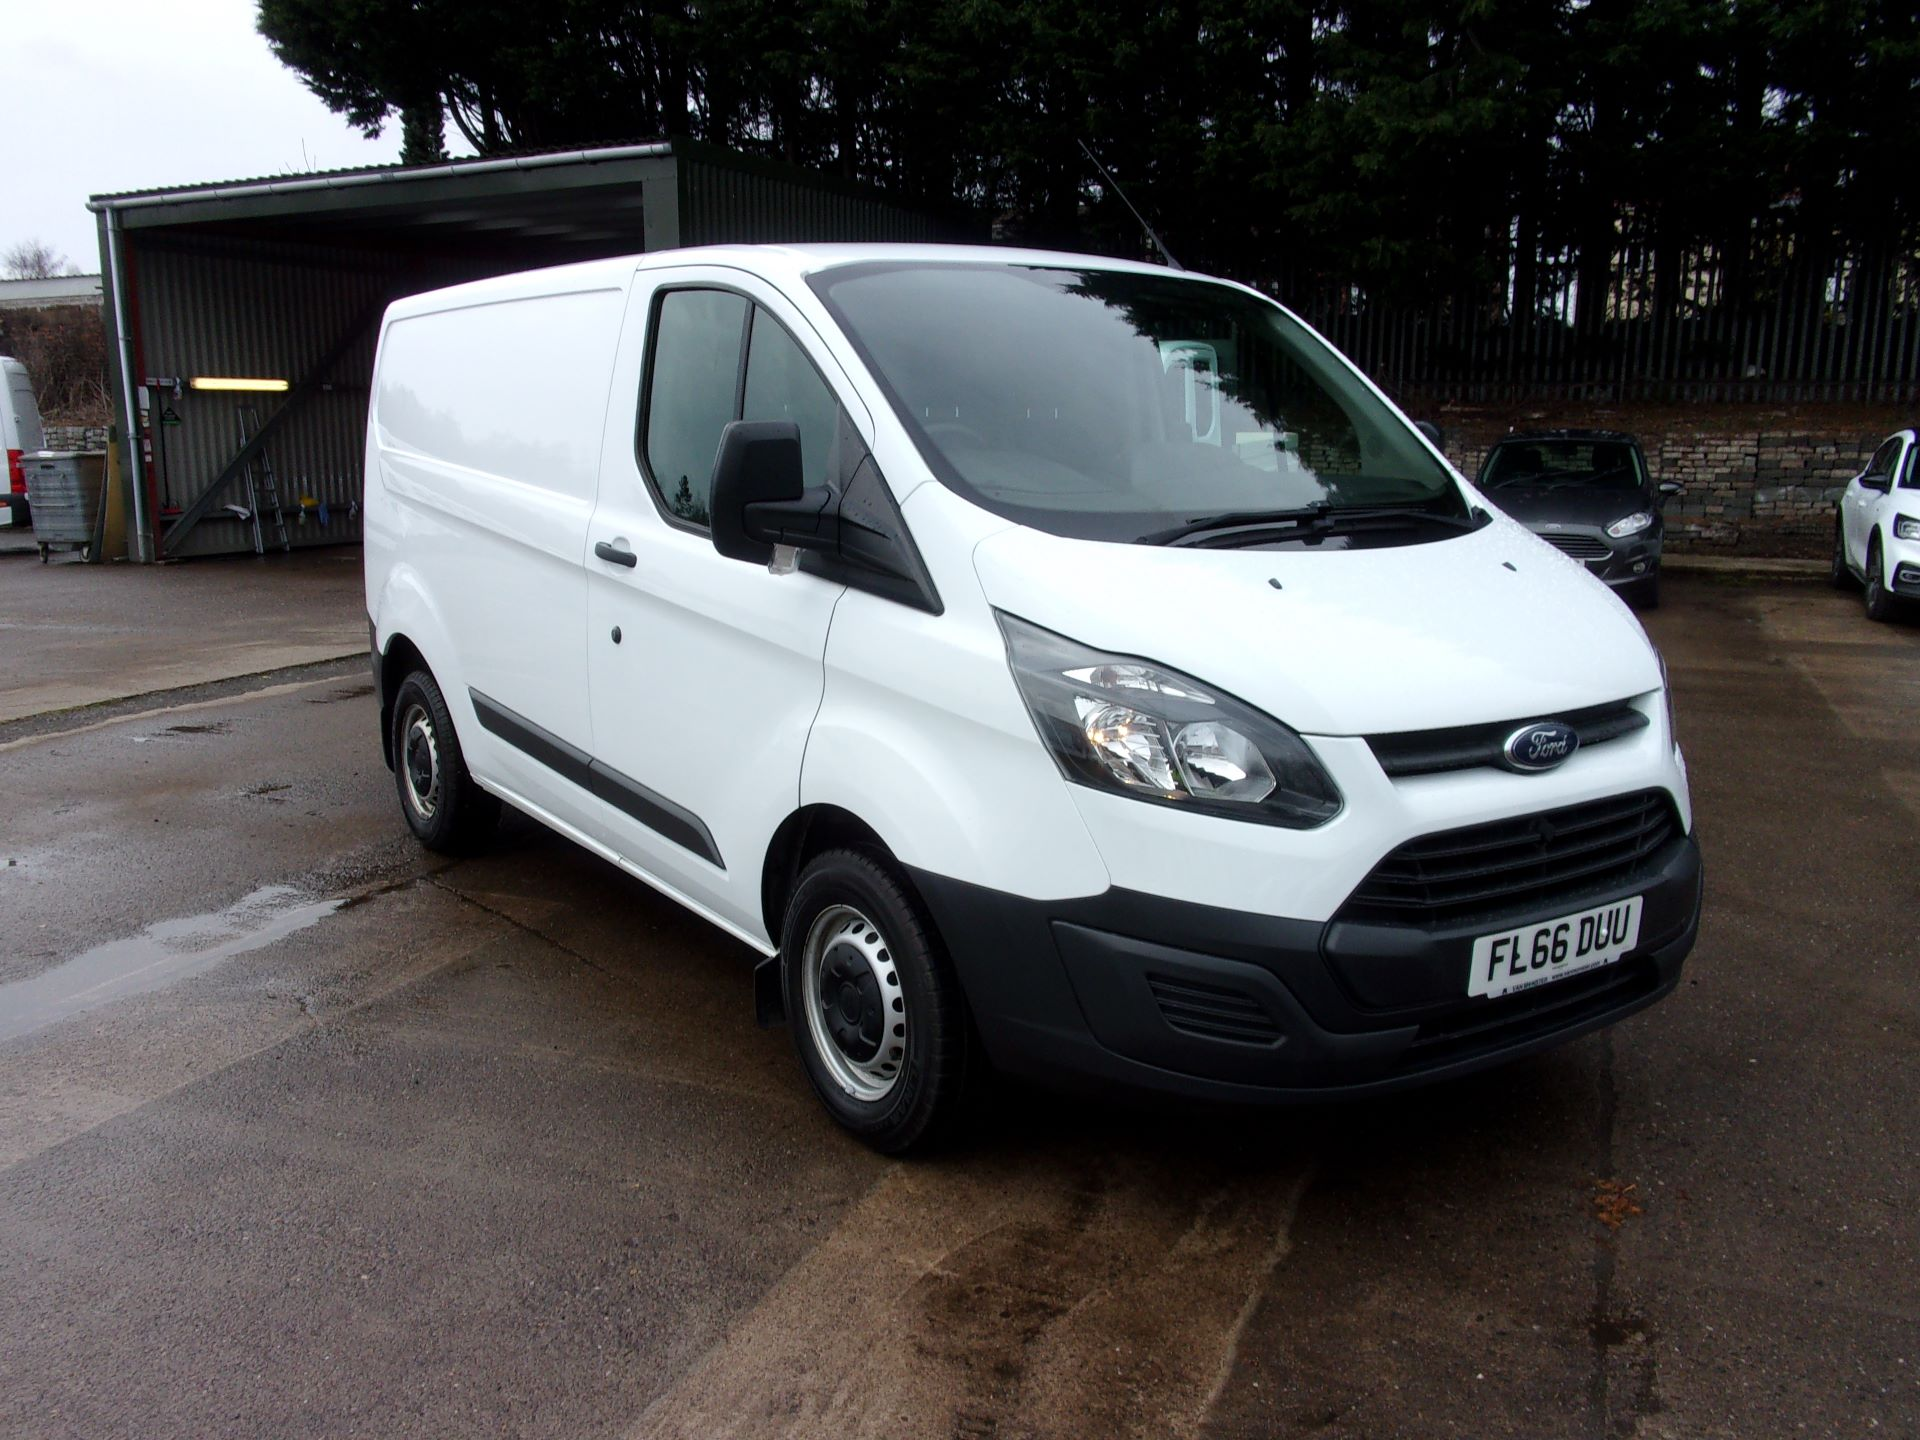 2016 Ford Transit Custom 290 L1 DIESEL FWD 2.2 TDCI 100PS LOW ROOF VAN EURO 5 (FL66DUU)